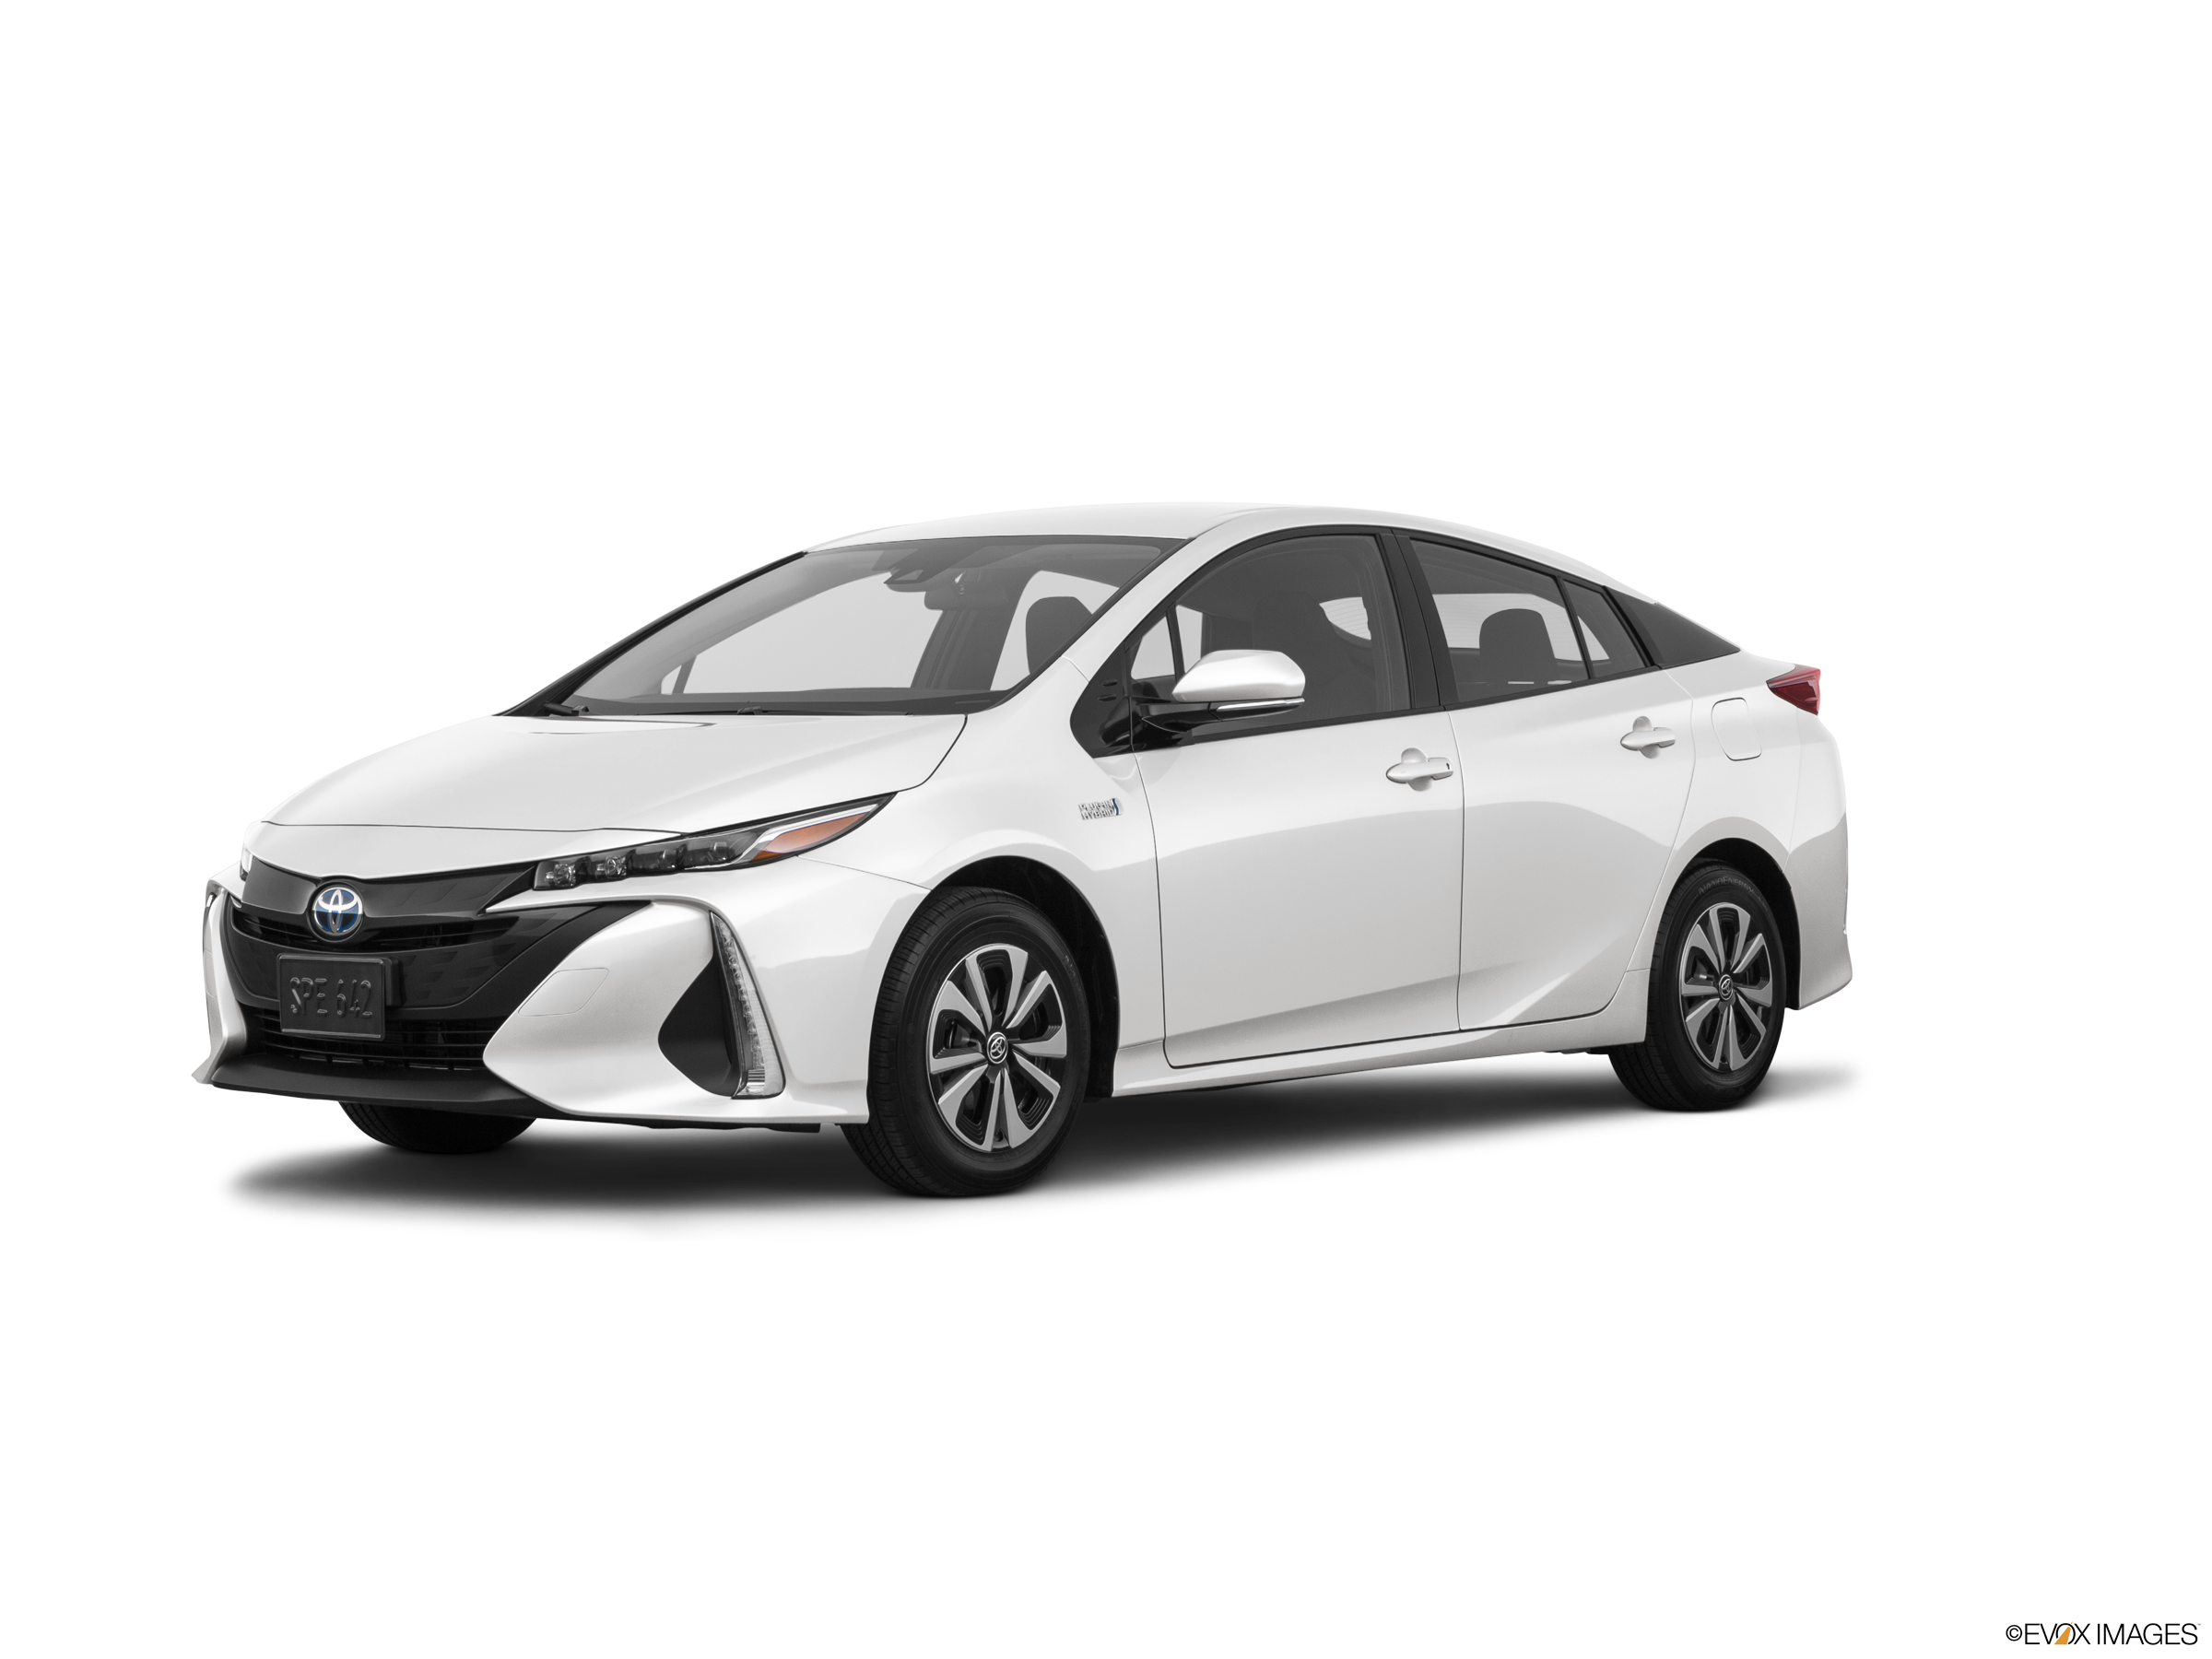 Top Expert Rated Hatchbacks of 2017 - 2017 Toyota Prius Prime